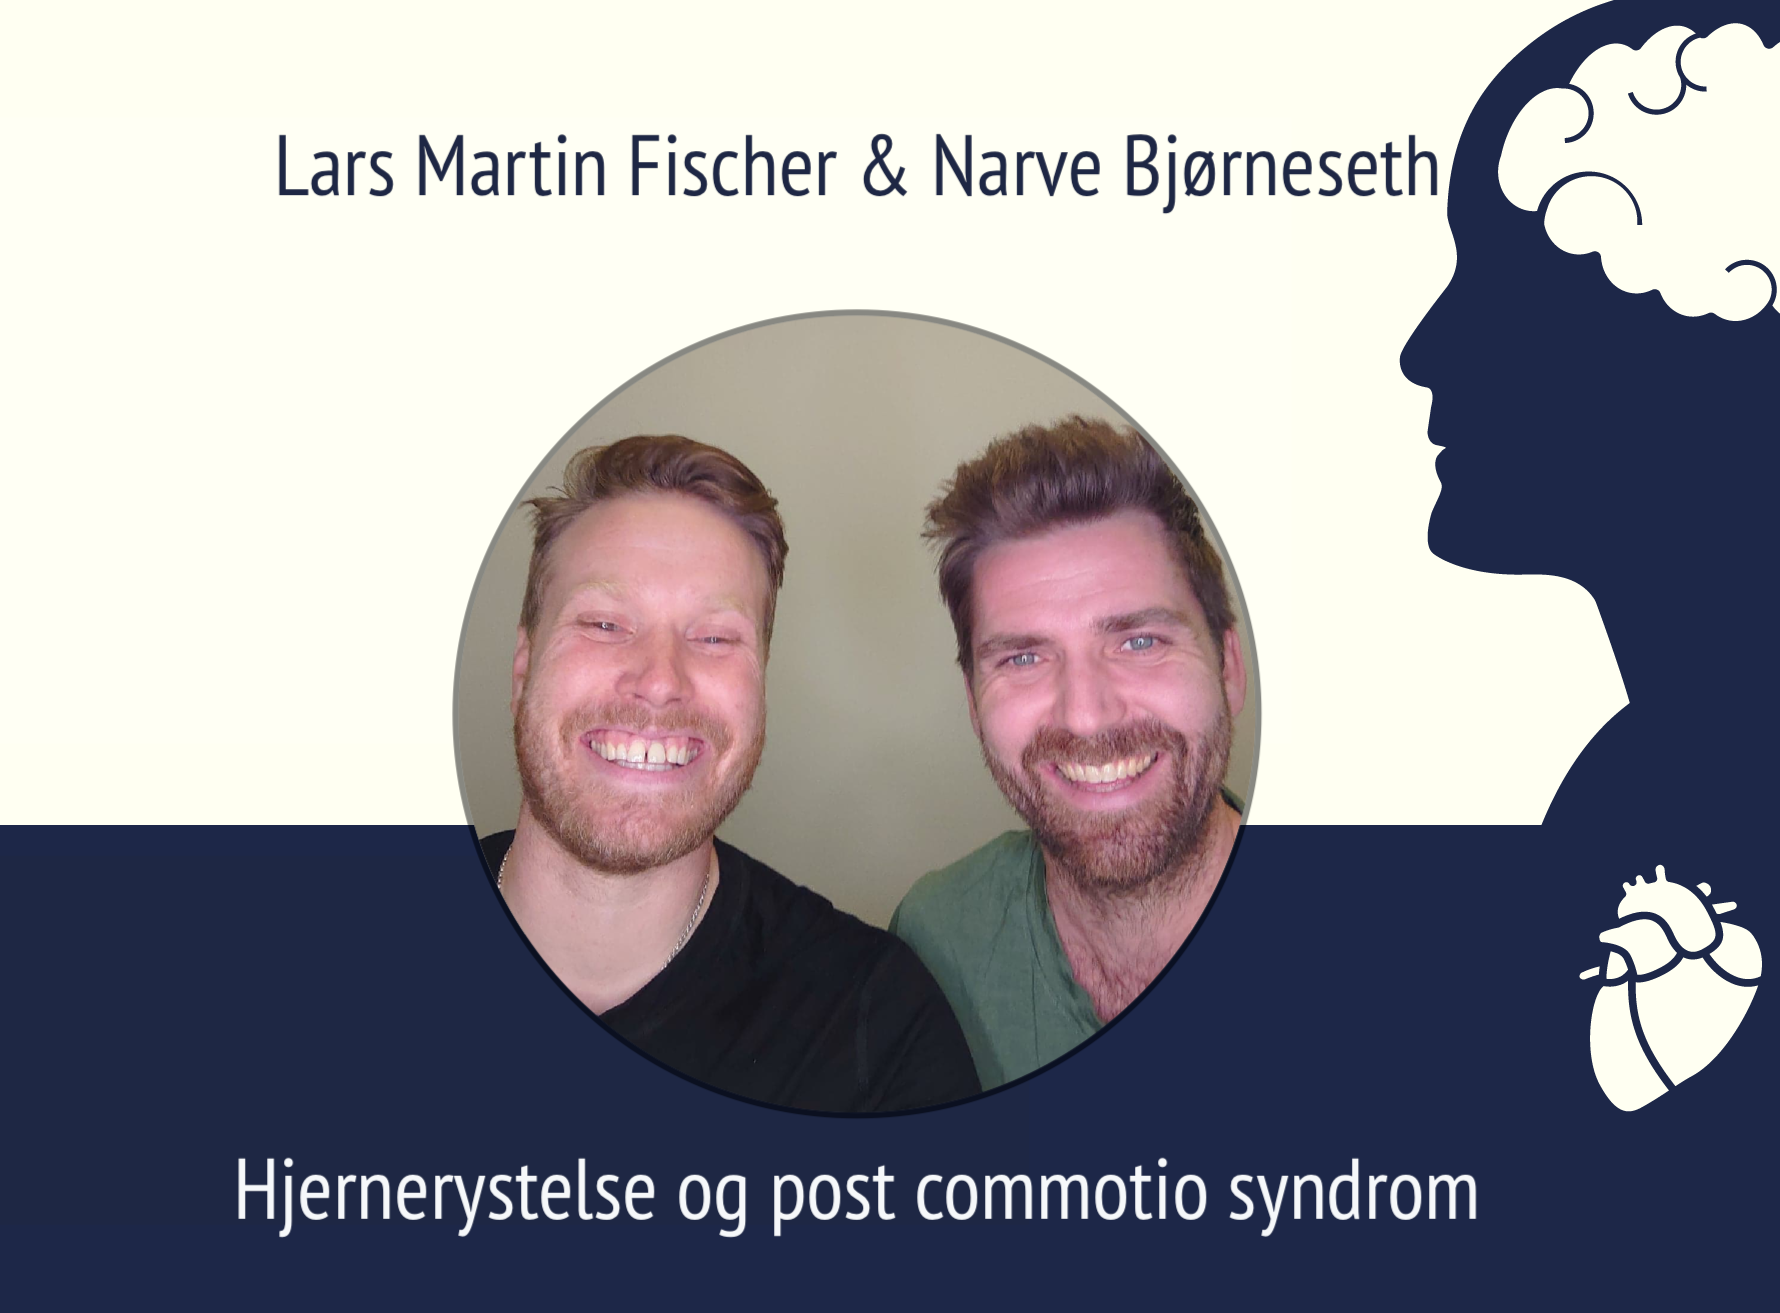 Hjernerystelse og post commotio syndrom